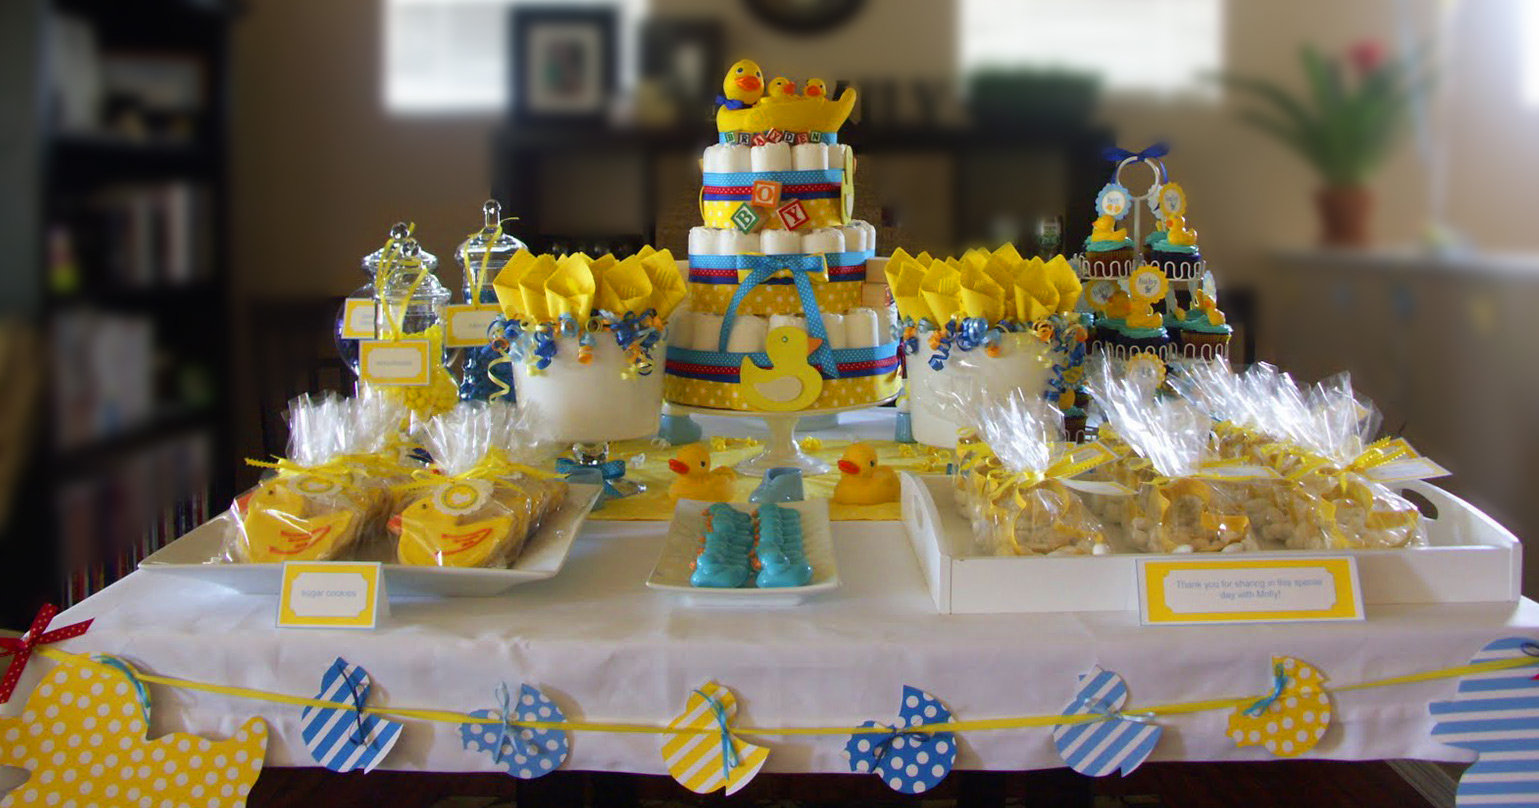 ducky baby shower is a cute and cuddly baby shower theme that will